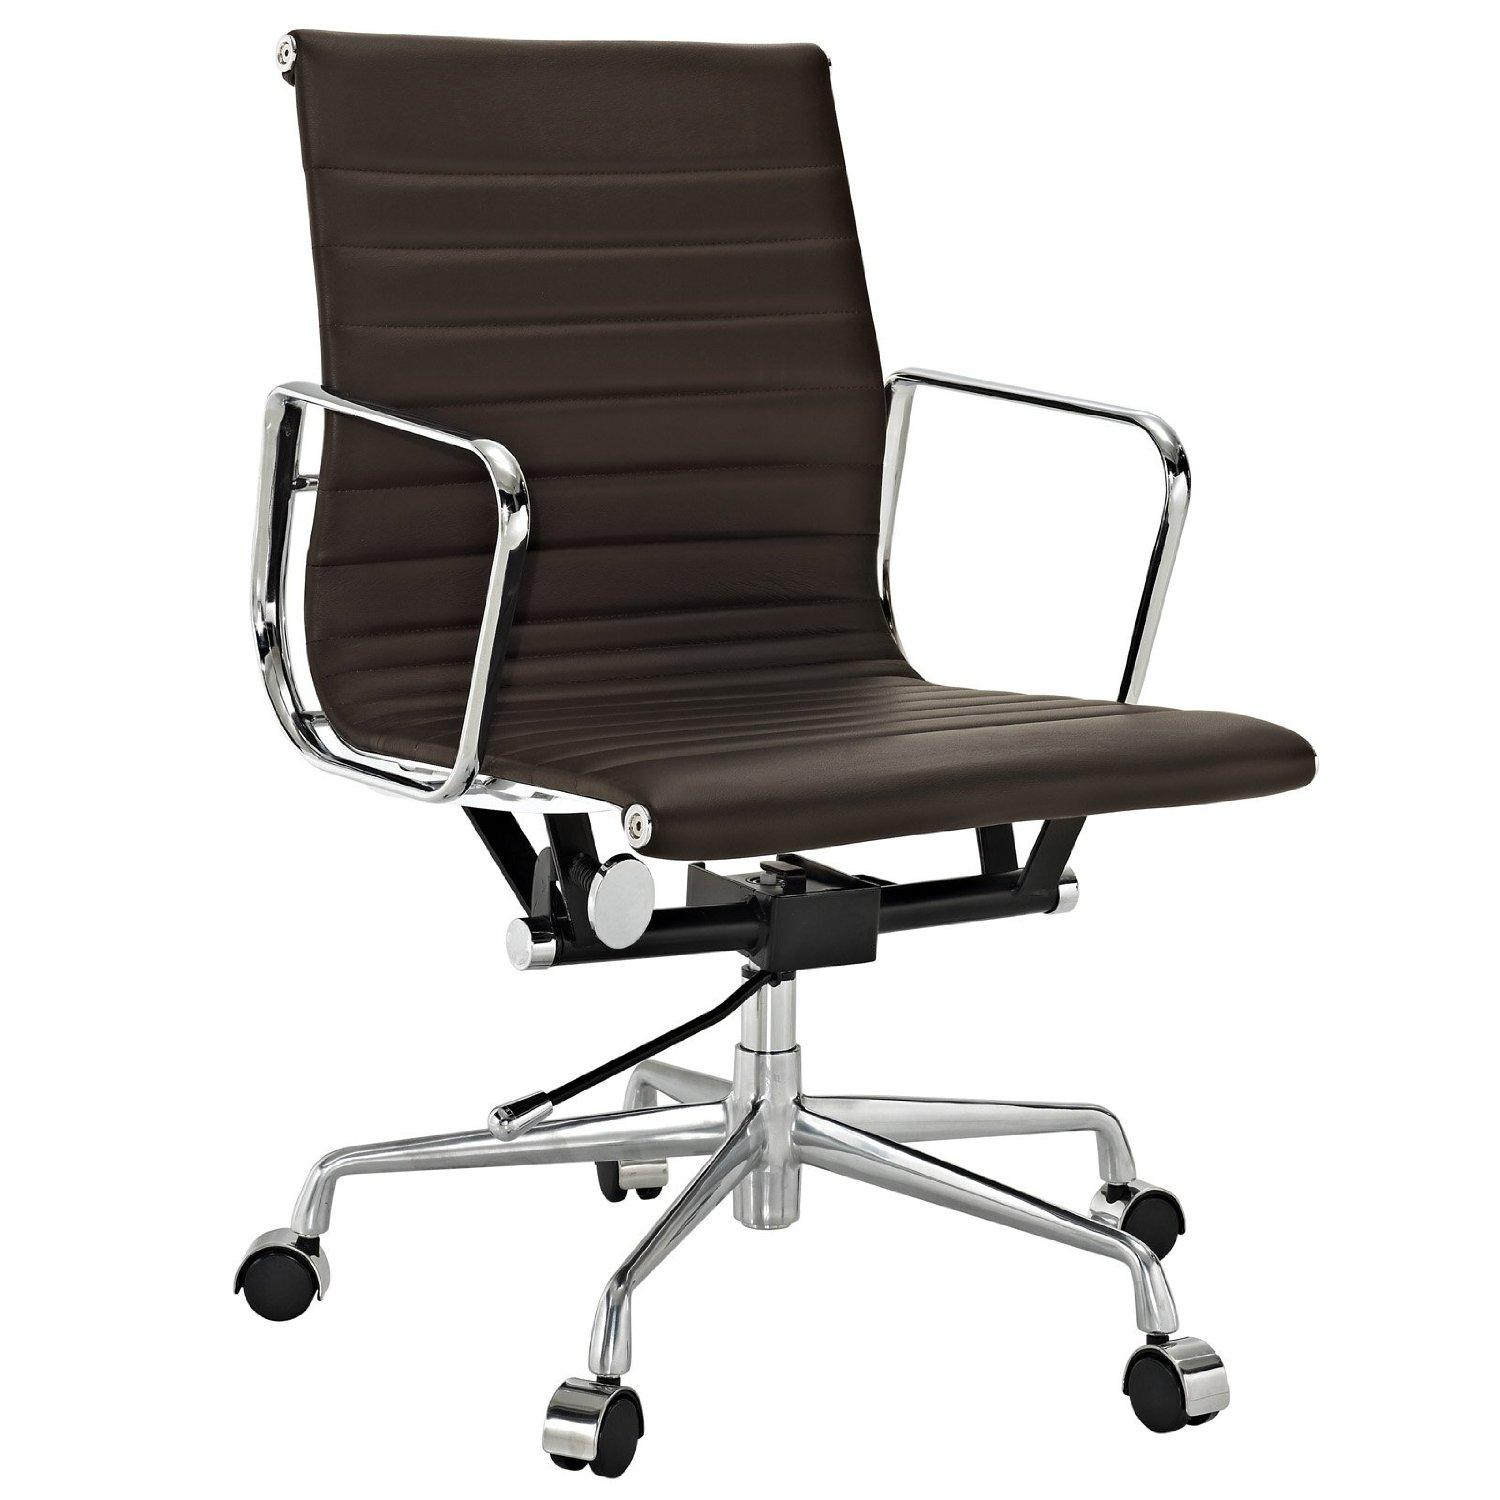 Office Chairs Leather Amazon Lexmod Ribbed Mid Back Office Chair In Brown